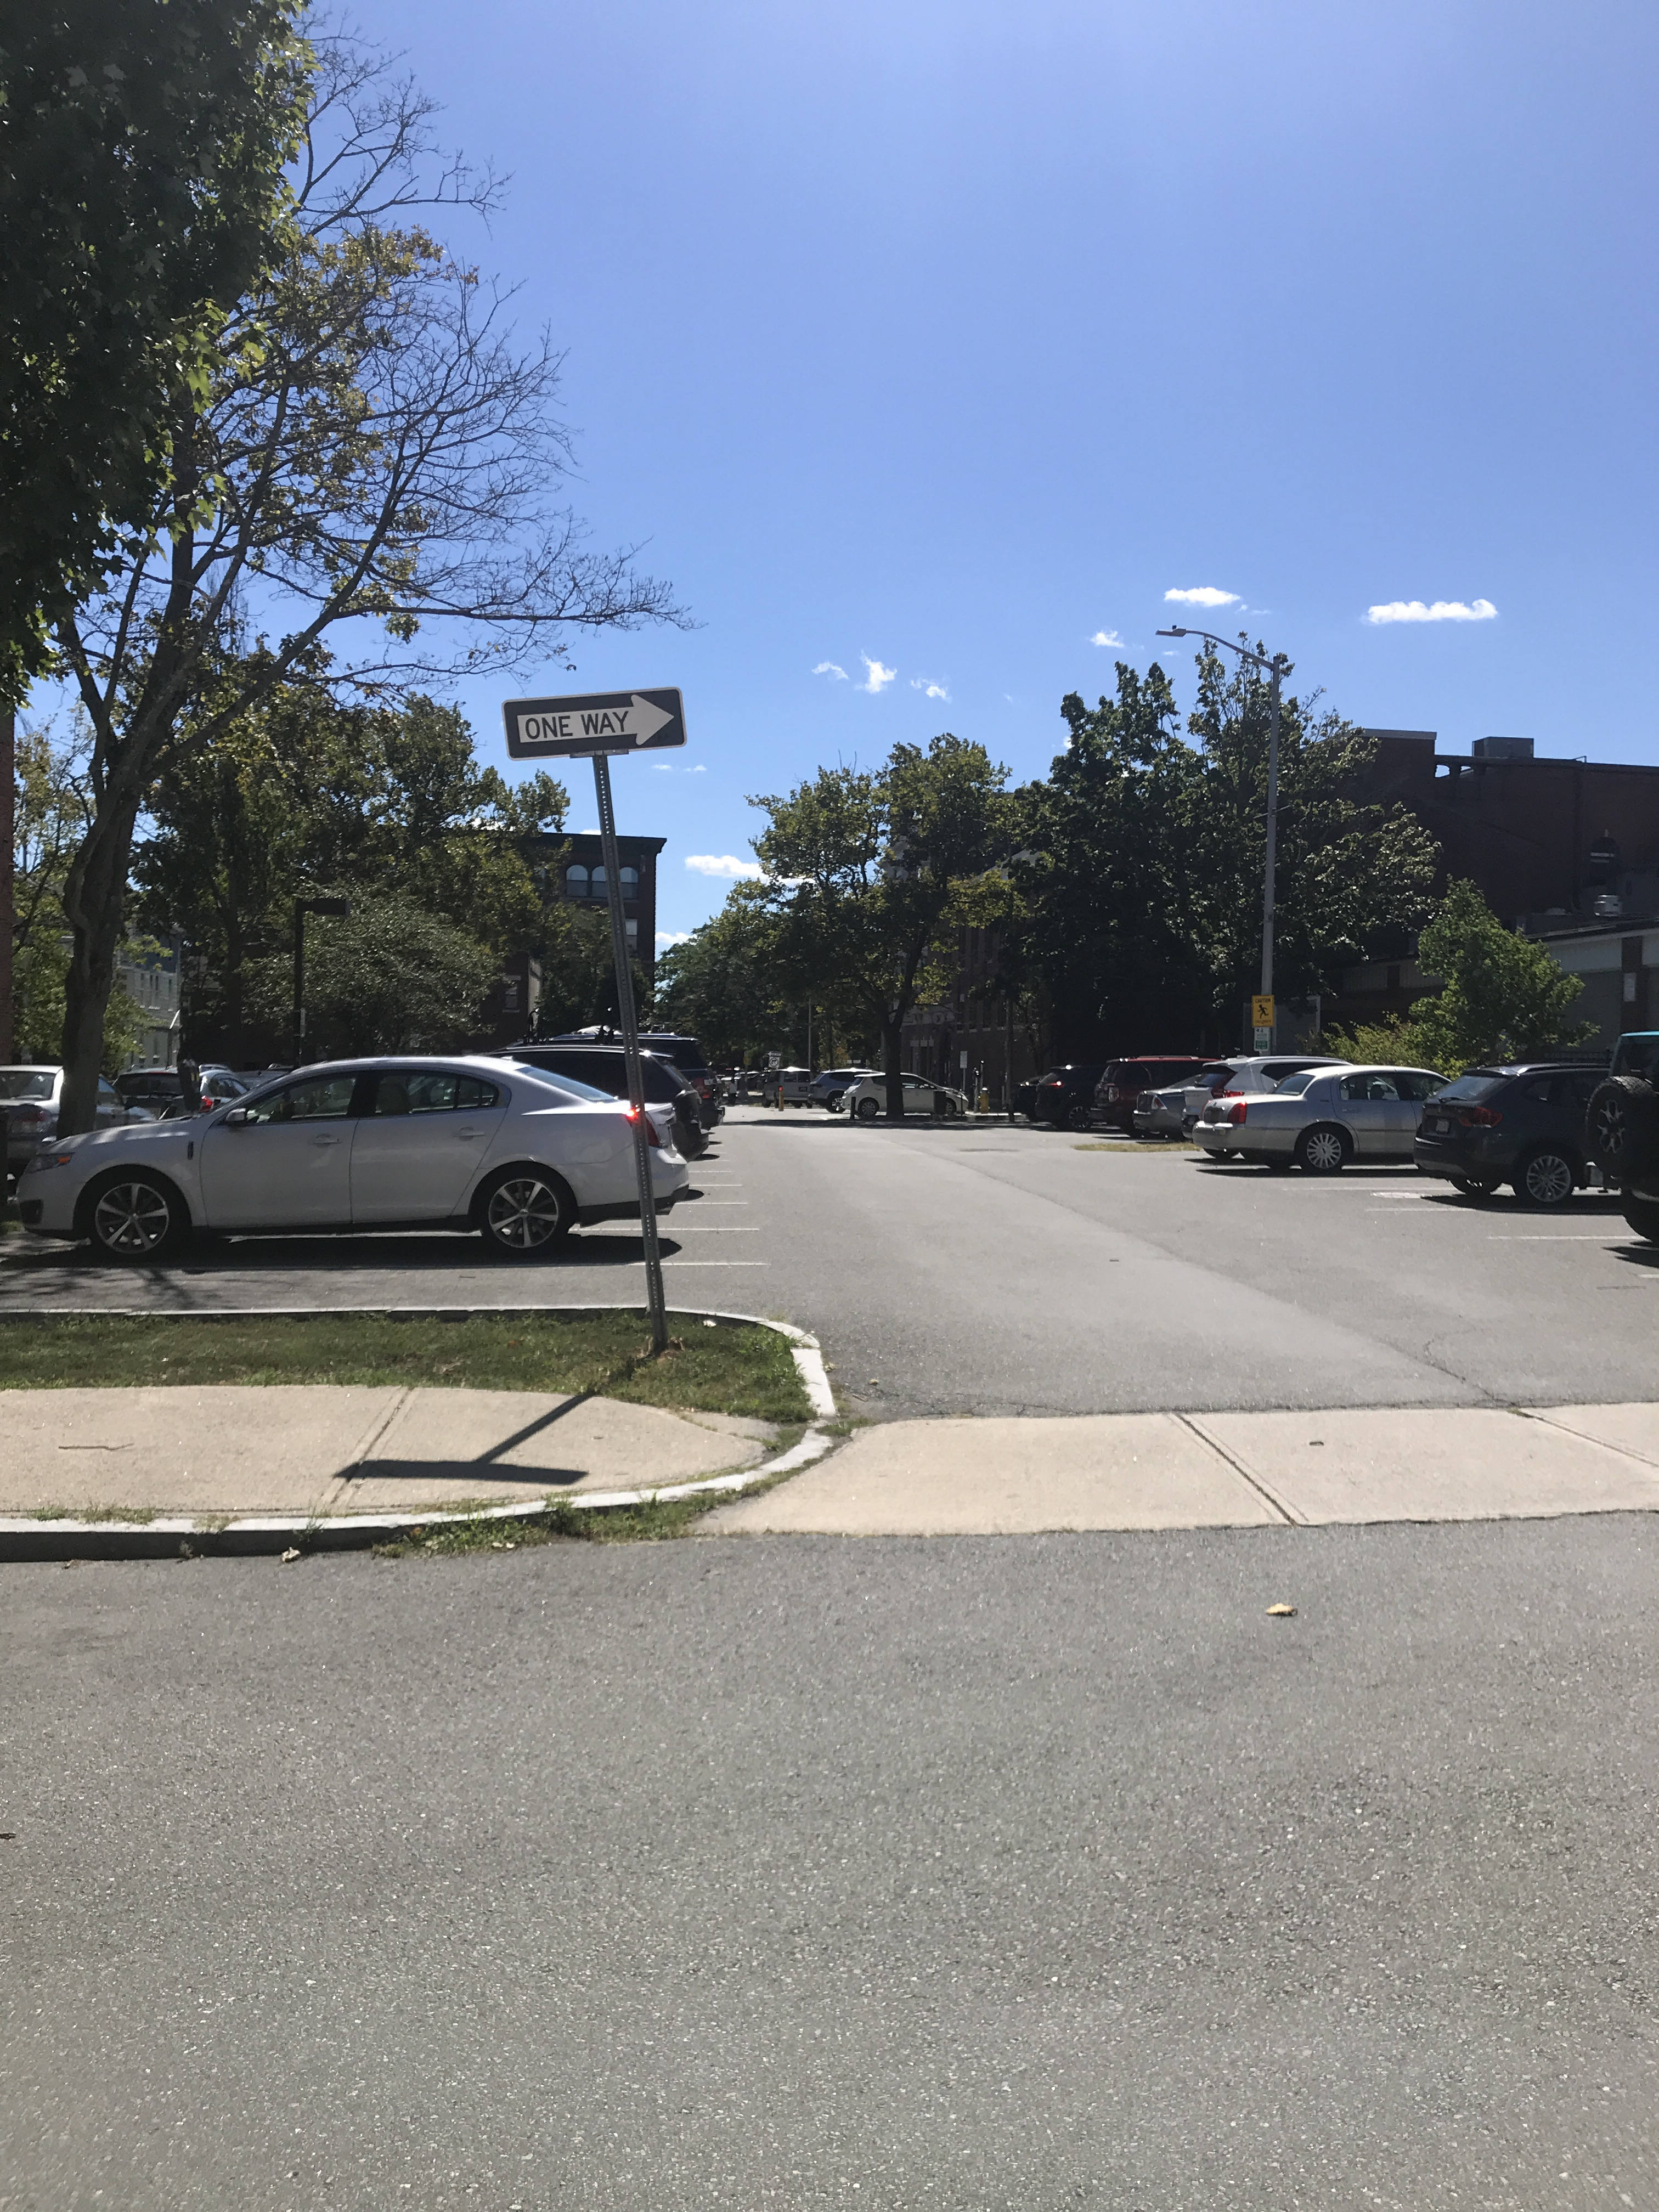 A view from one side of a street, across the street, where a parking lot also serves as a cross-street to the next street over